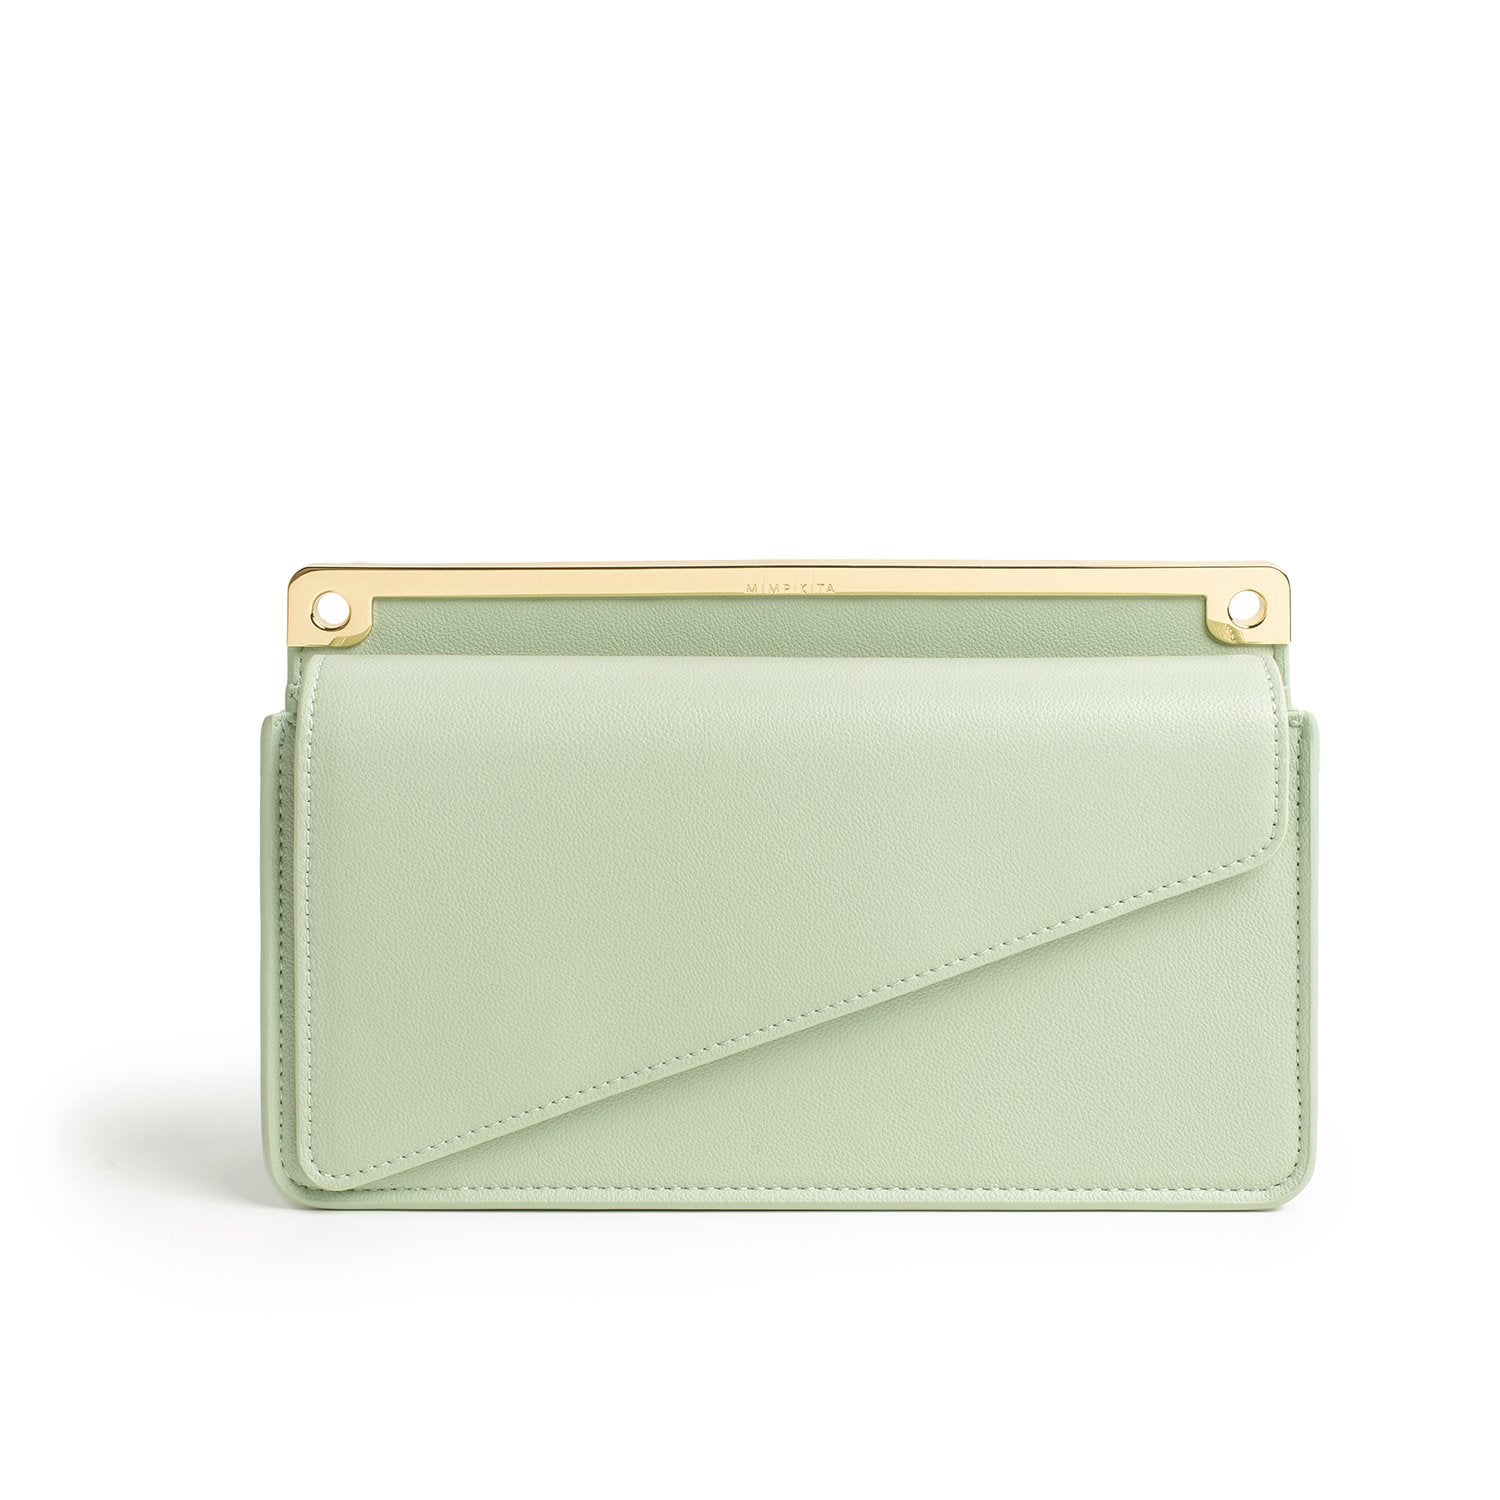 Kita Clutch - Mint